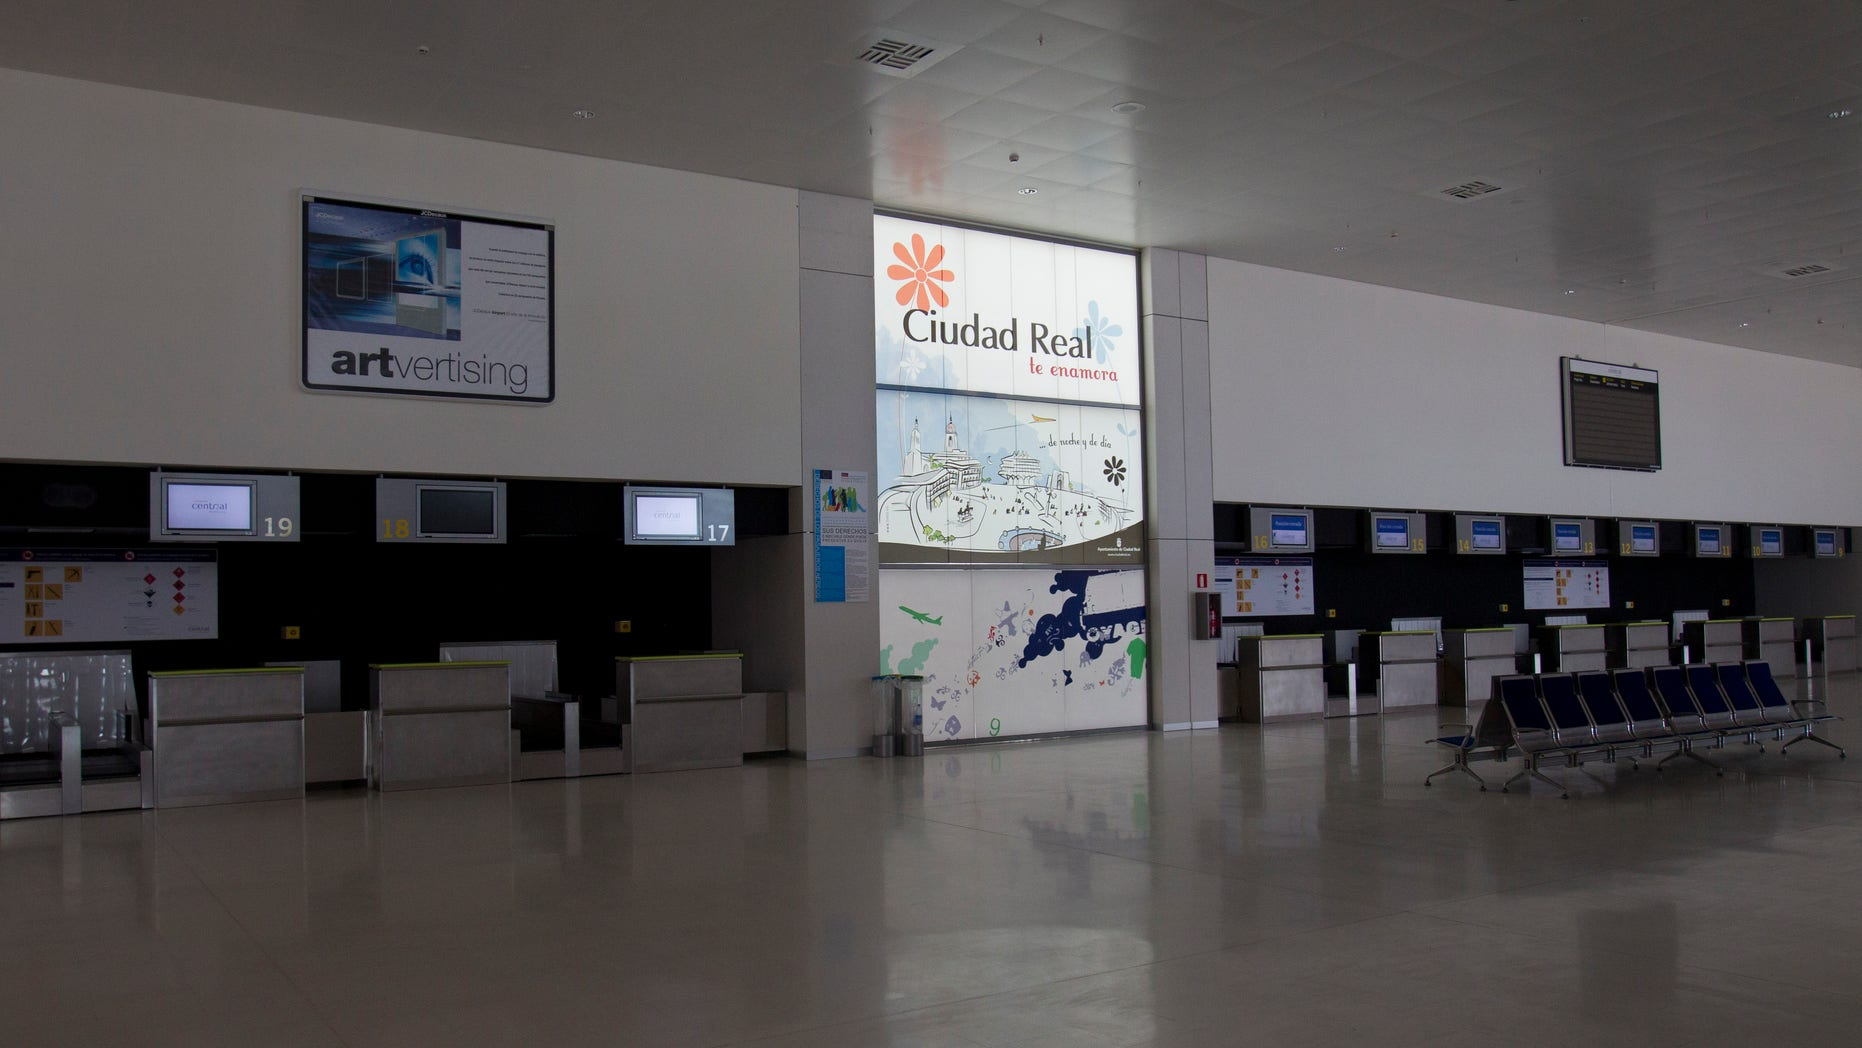 Check-in desks stand empty at the Central airport in Ciudad Real, Spain.